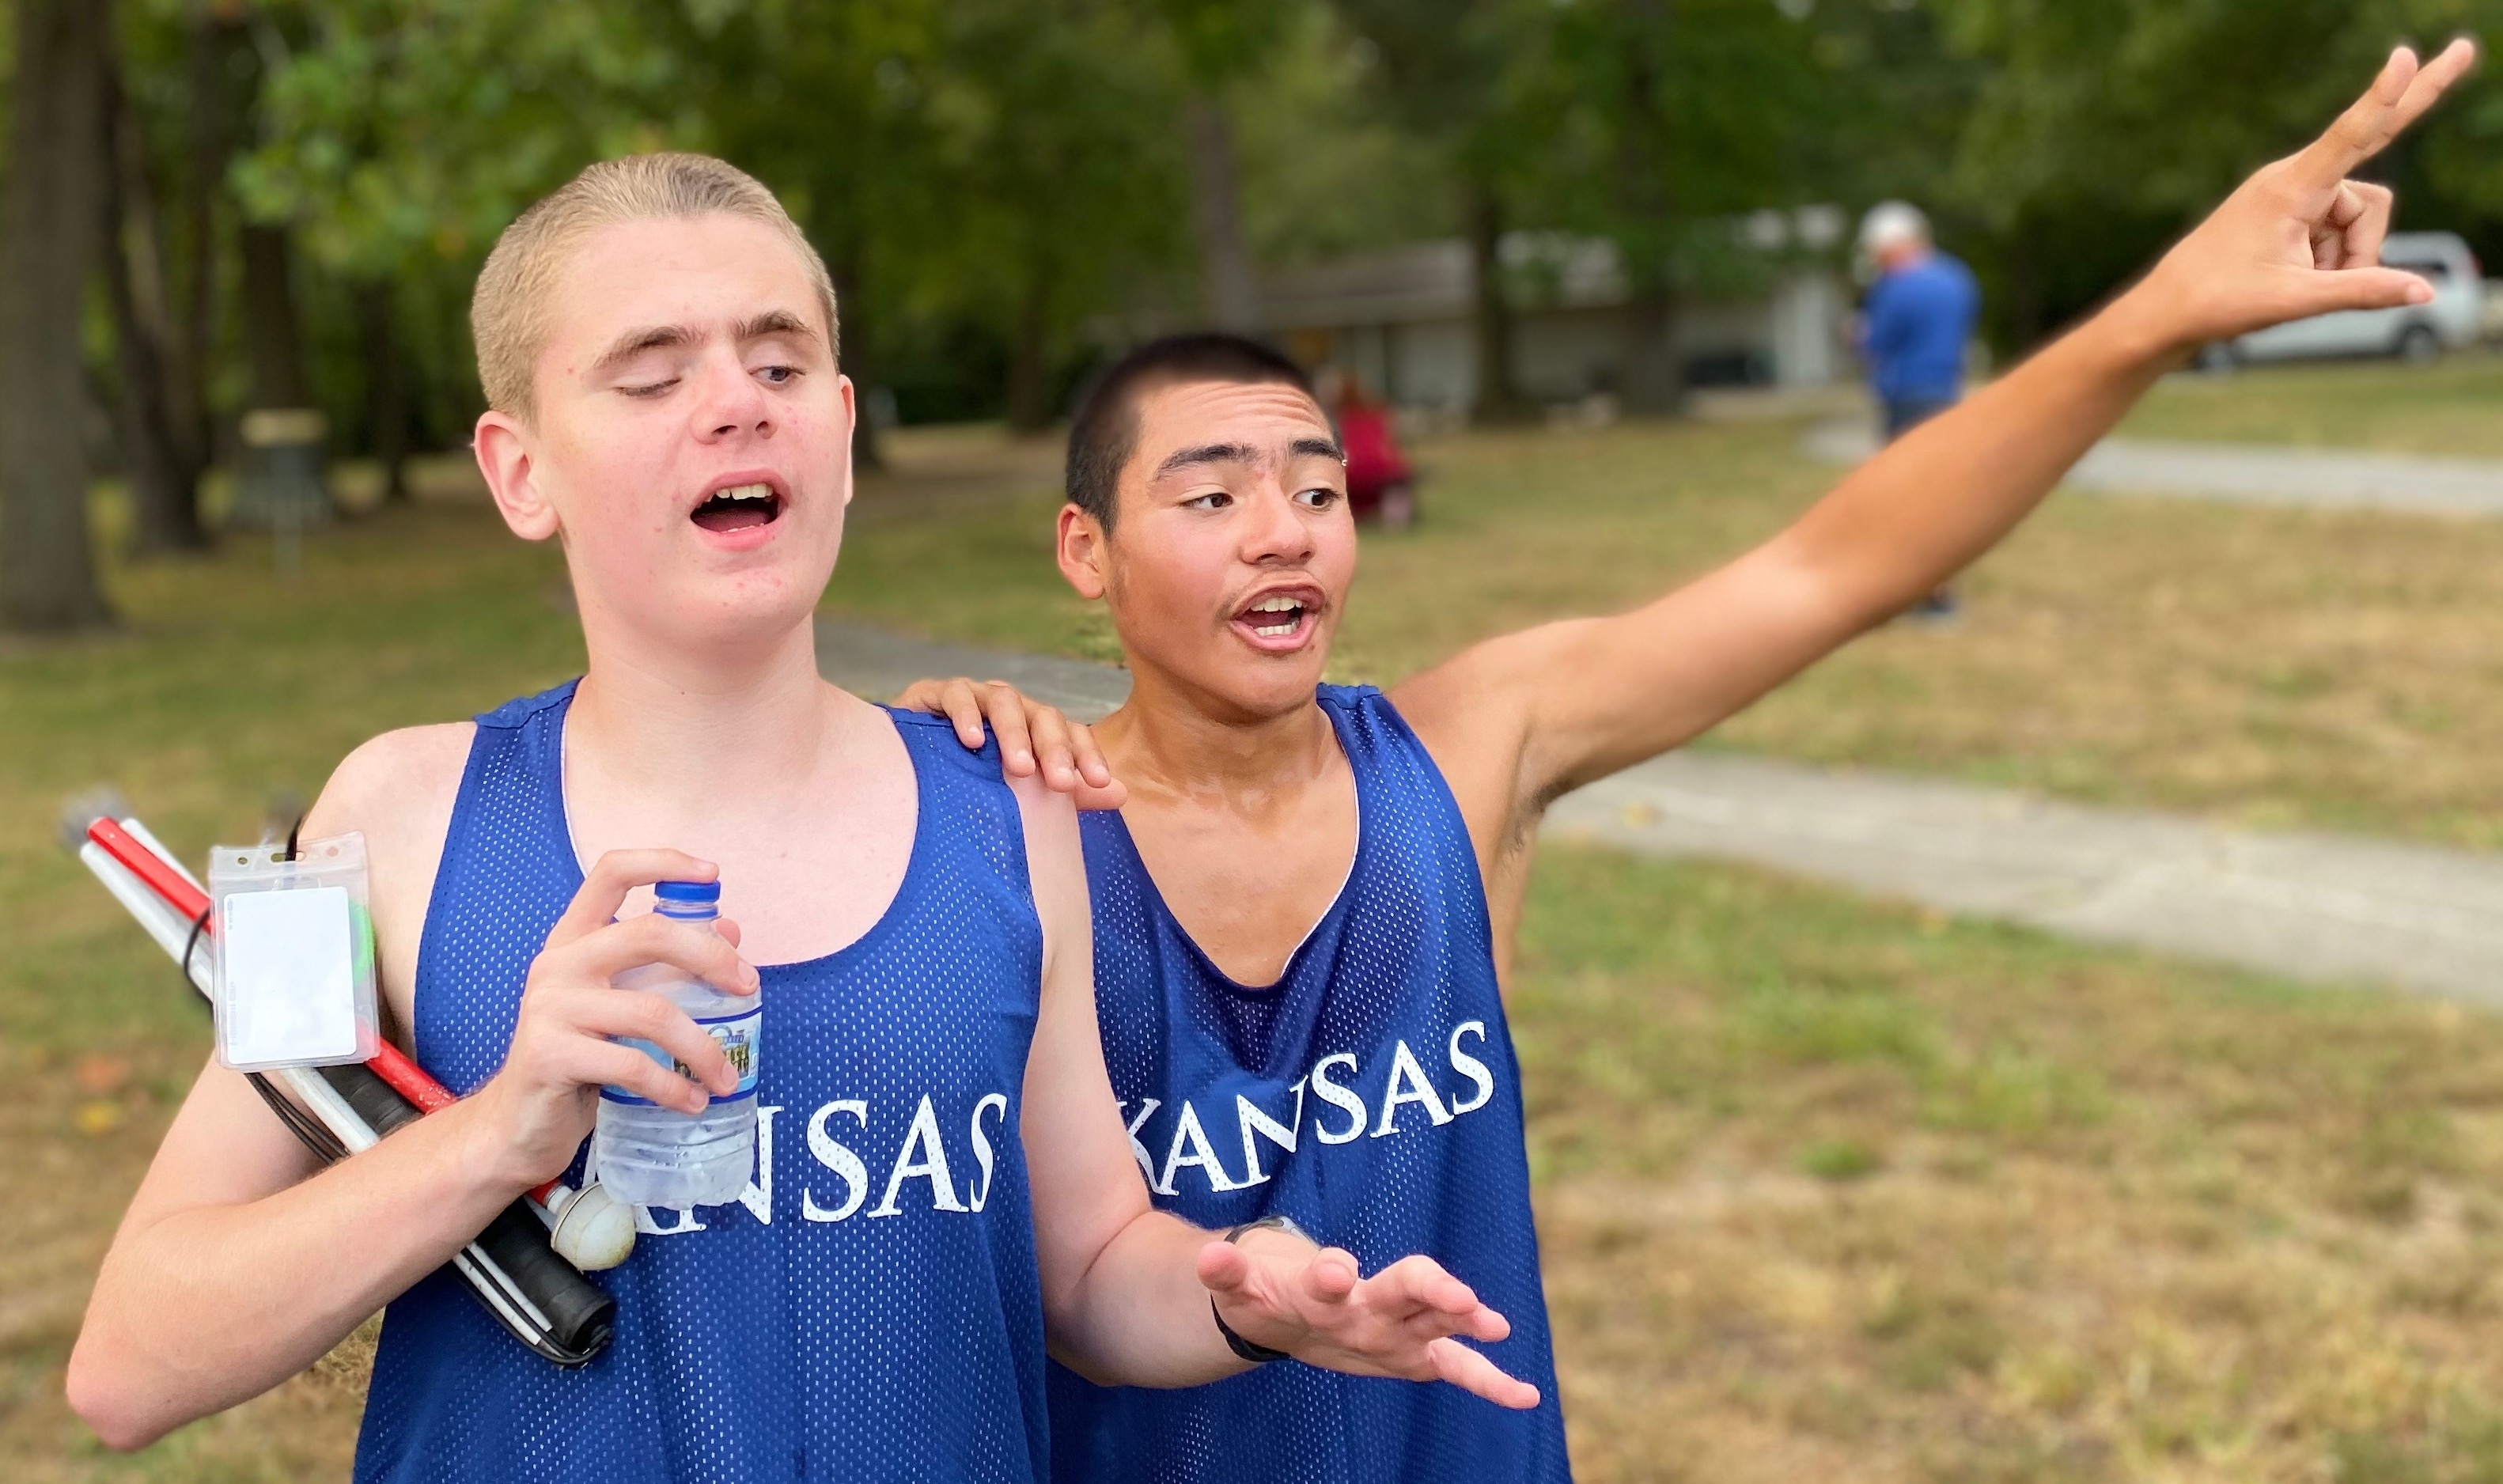 Two Male Students In Track Uniforms. One Holding Cane And Water Bottle, The Other Has Hand On Teammates Shoulder And Oner Hand Raised To The Sky.